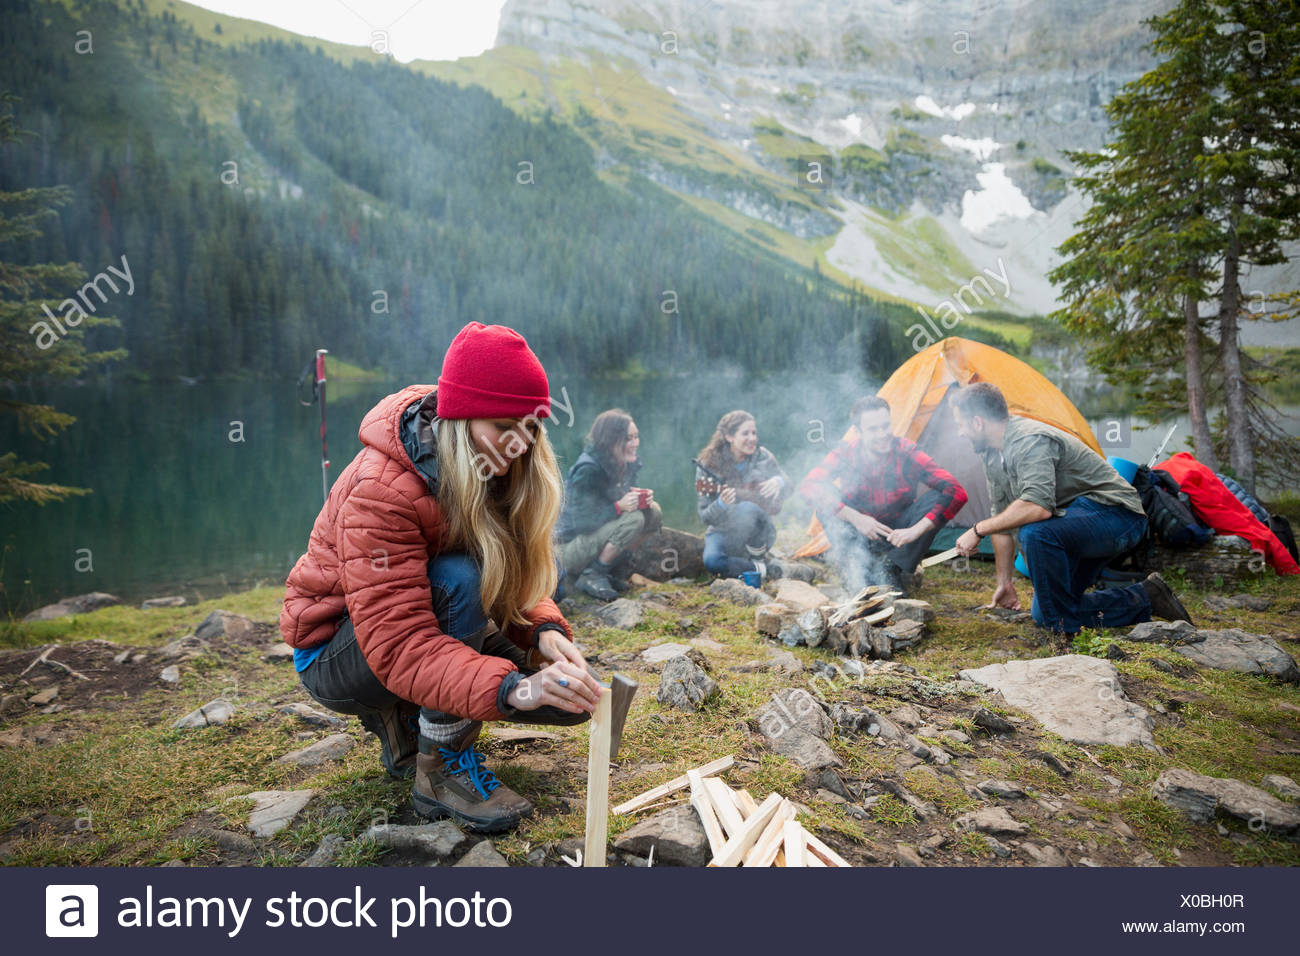 Woman splitting firewood at remote lakeside campsite - Stock Image